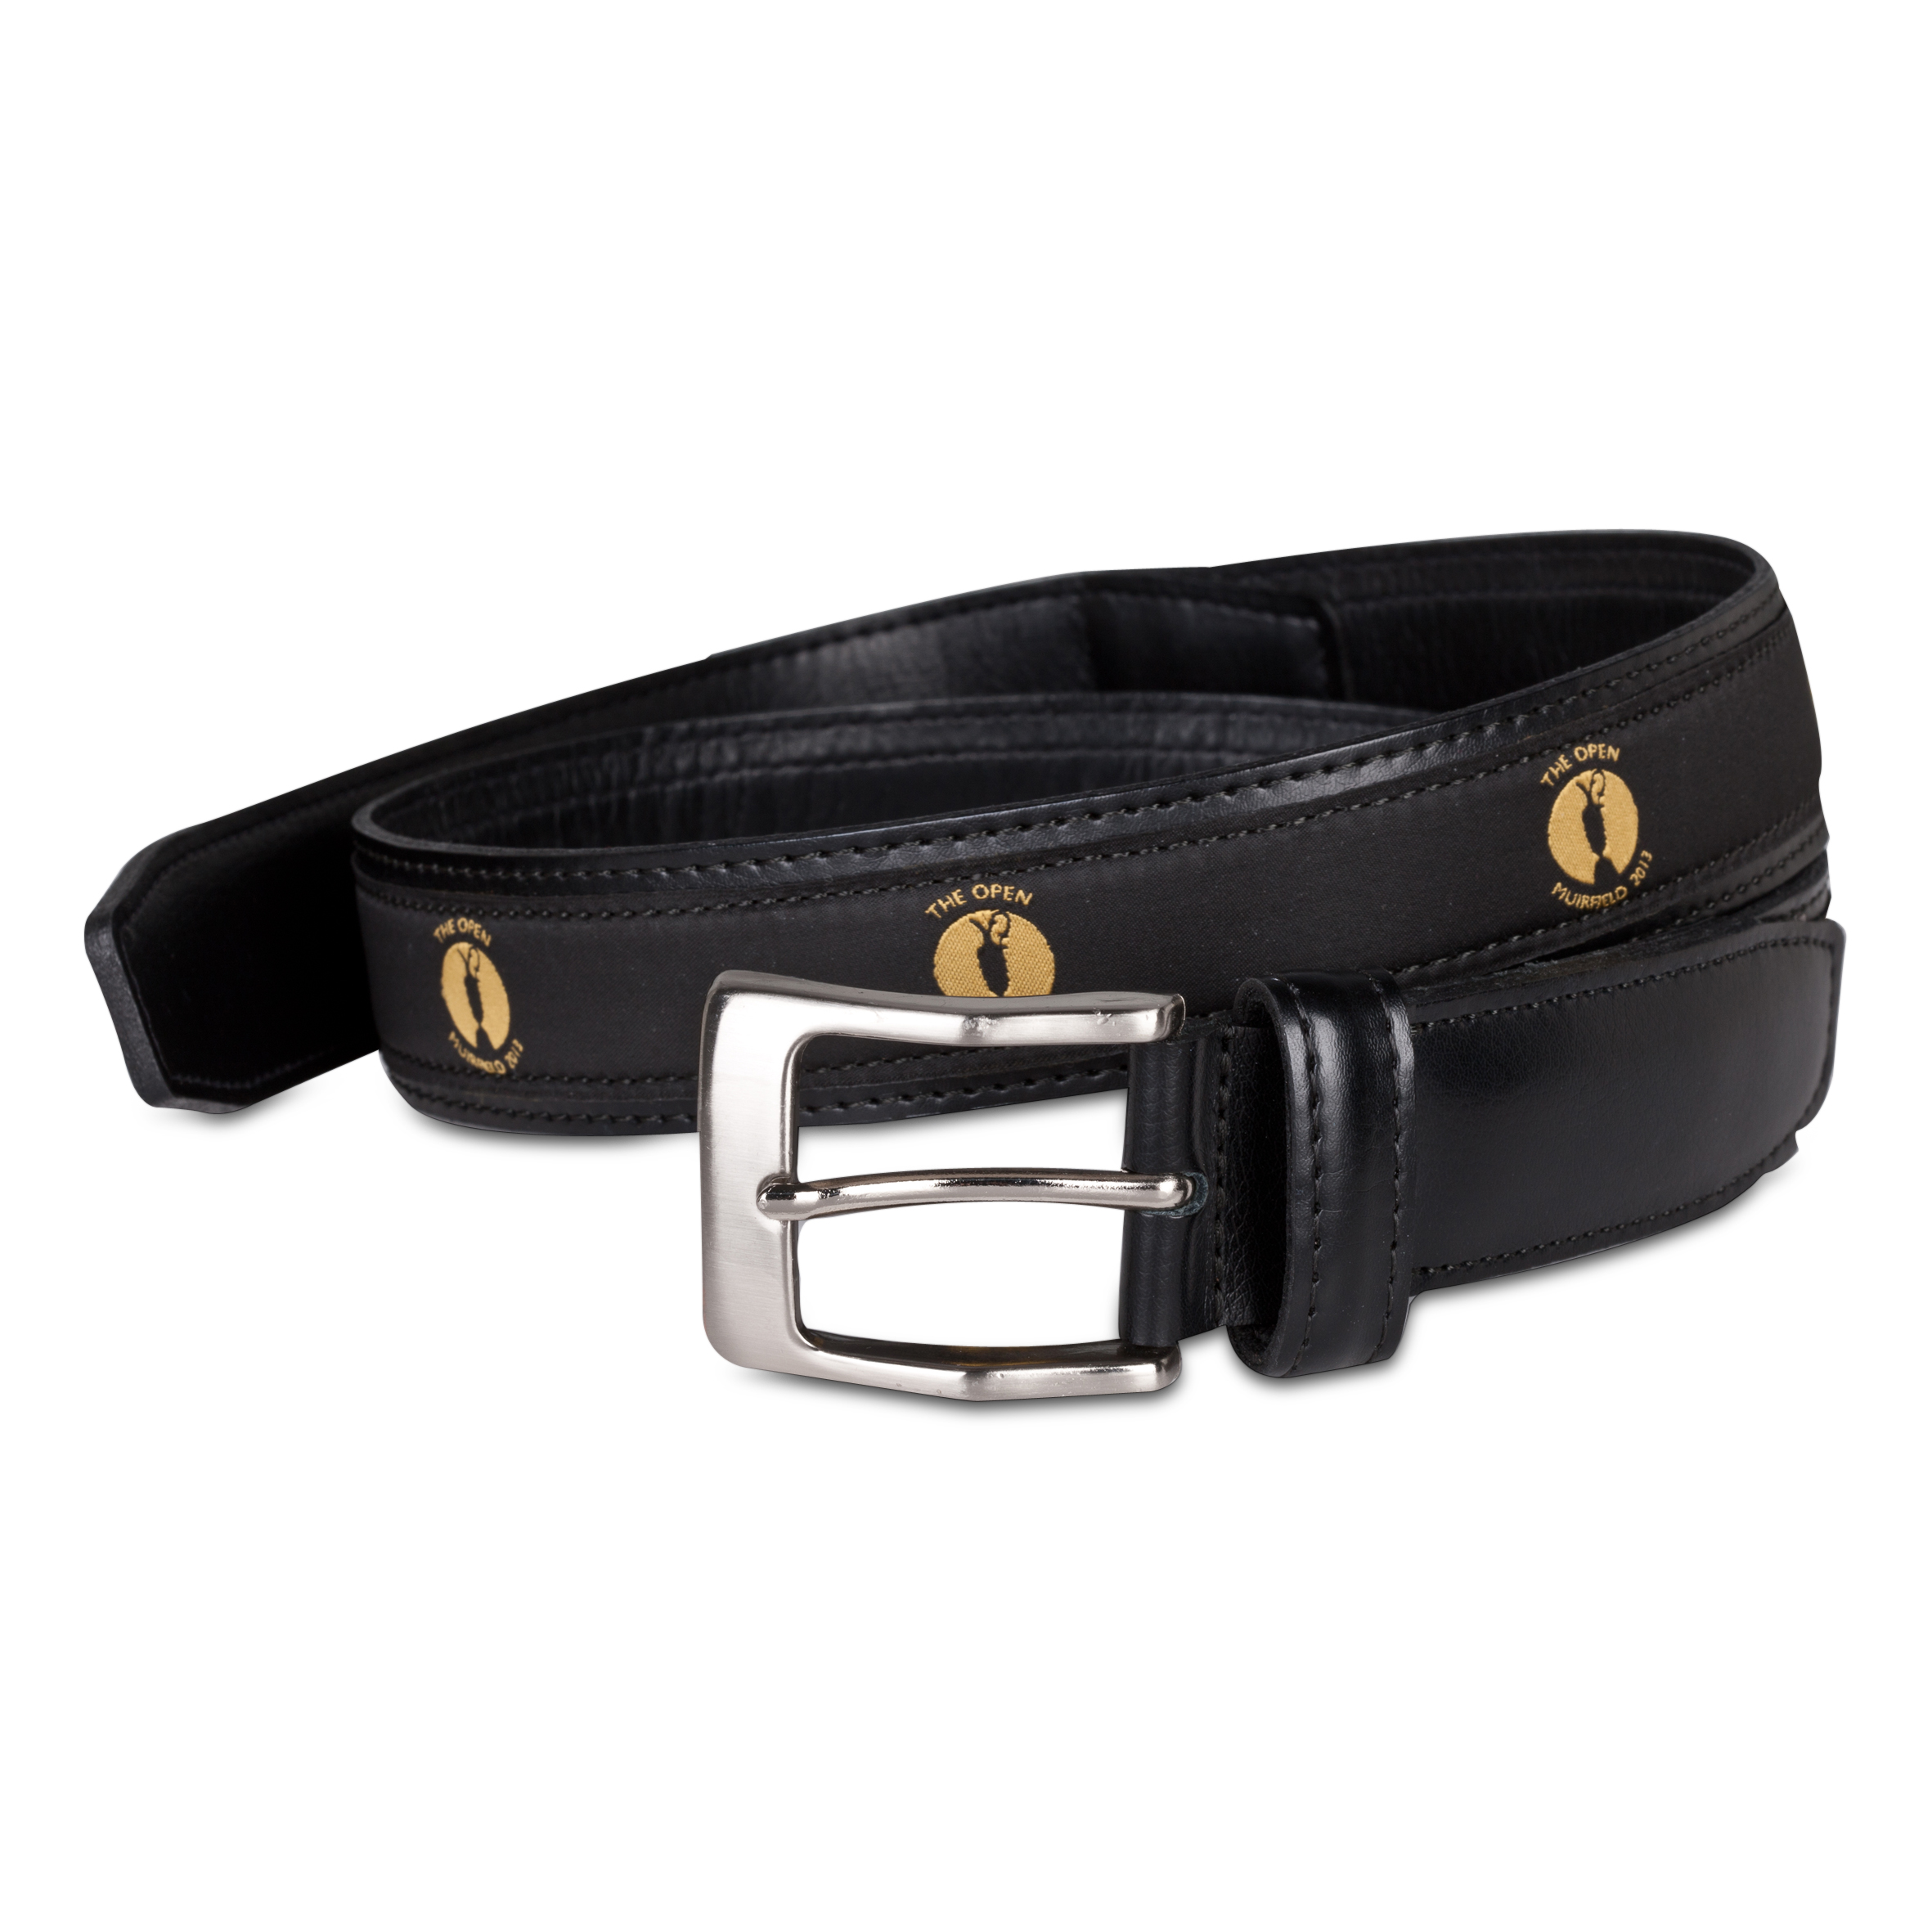 The Open Championship Muirfield Leather Belt - Black/Gold Ribbon Black